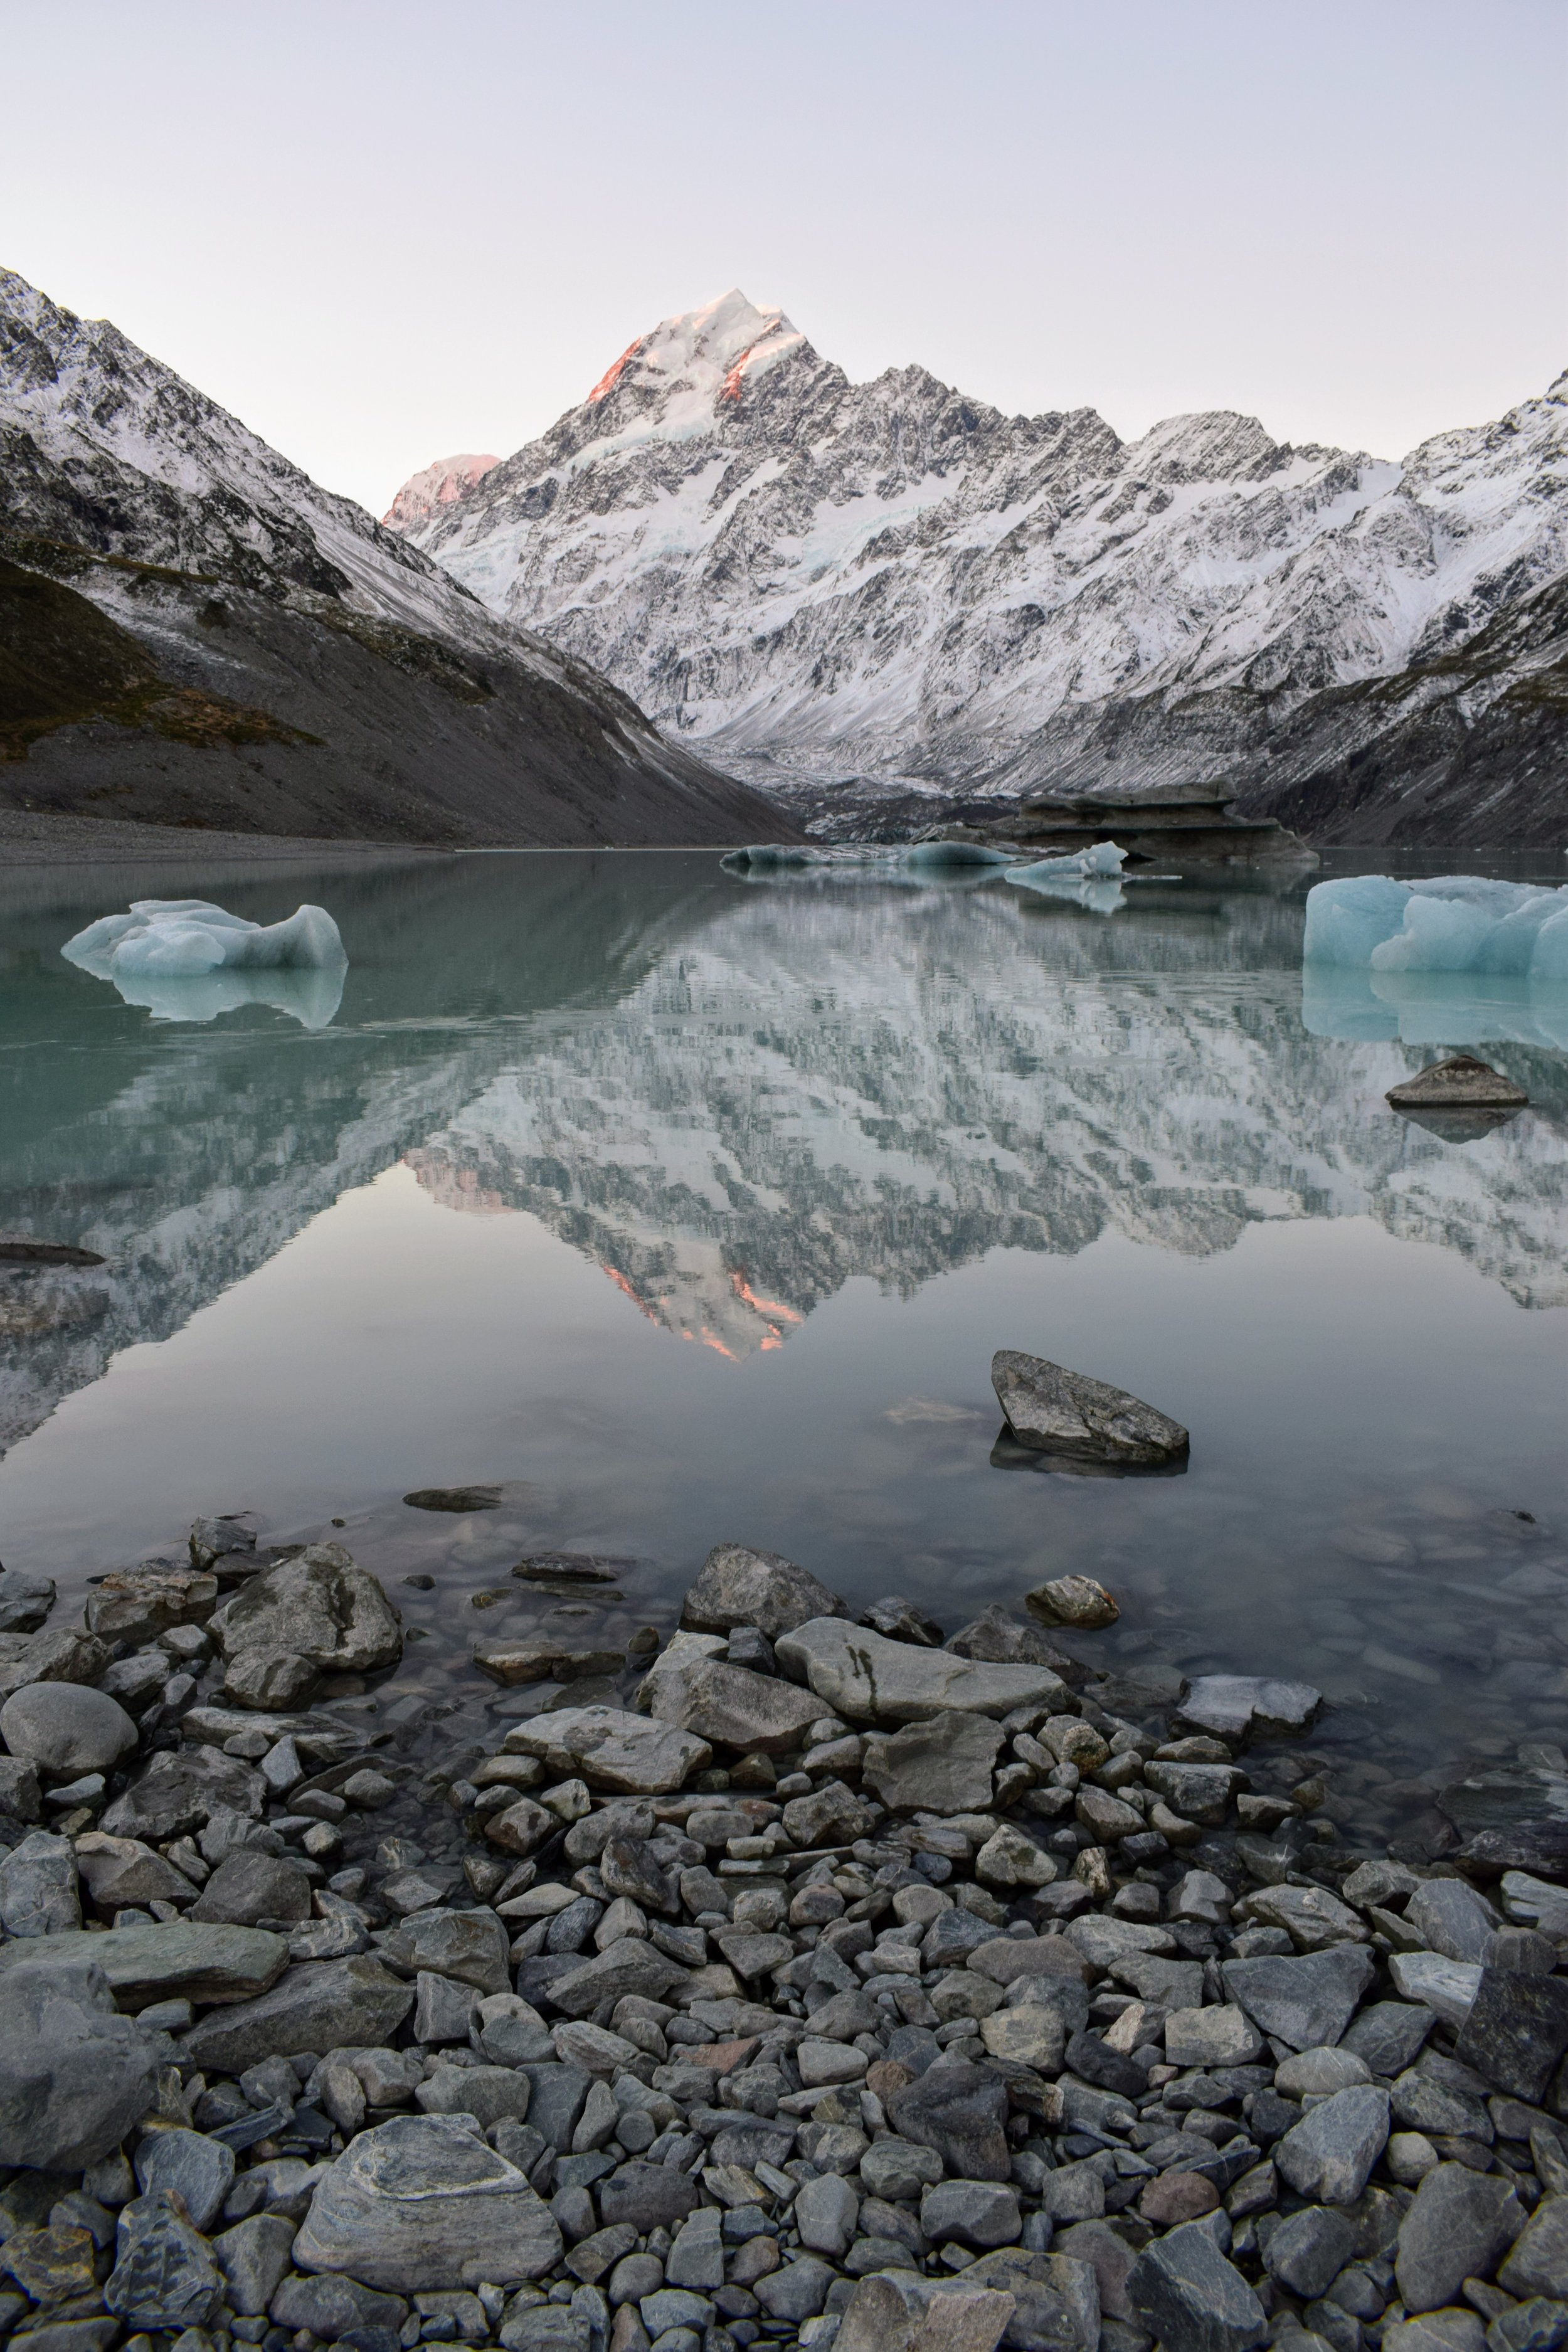 Aoraki at sunset, with Hooker Lake and small icebergs in the foreground. Still can't believe this was real.